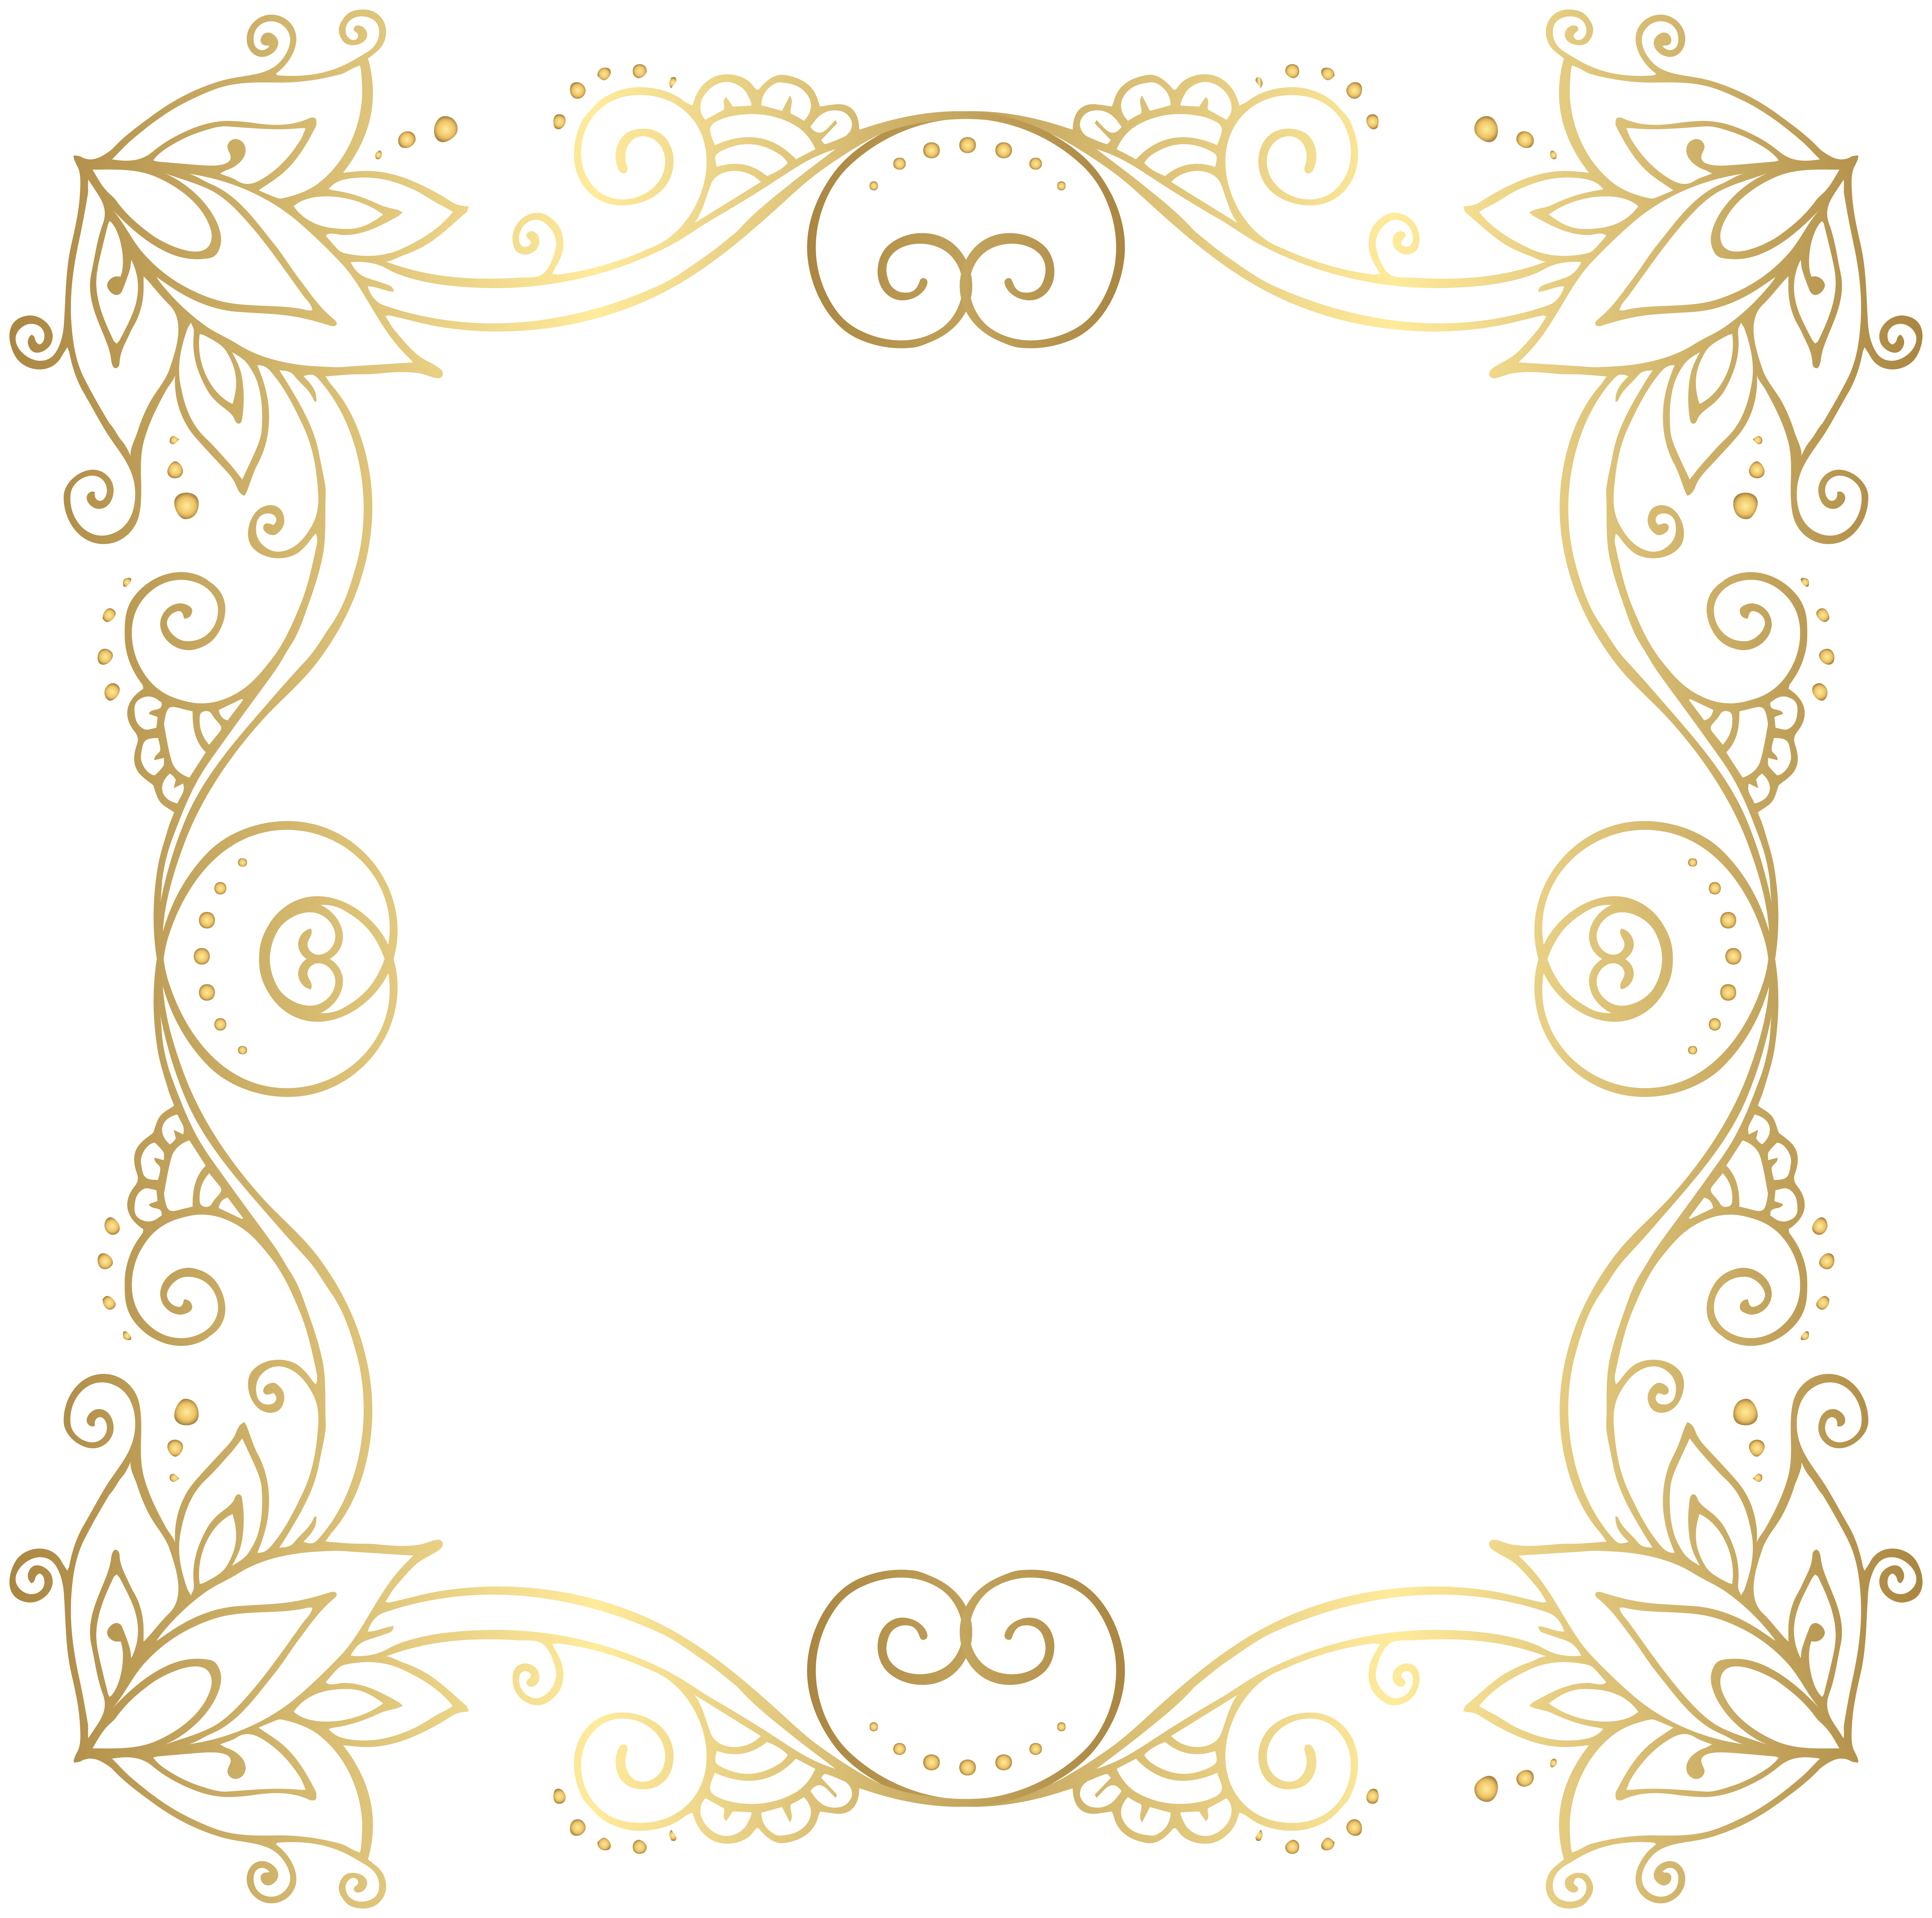 Square clipart beautiful border. Gold frame png clip